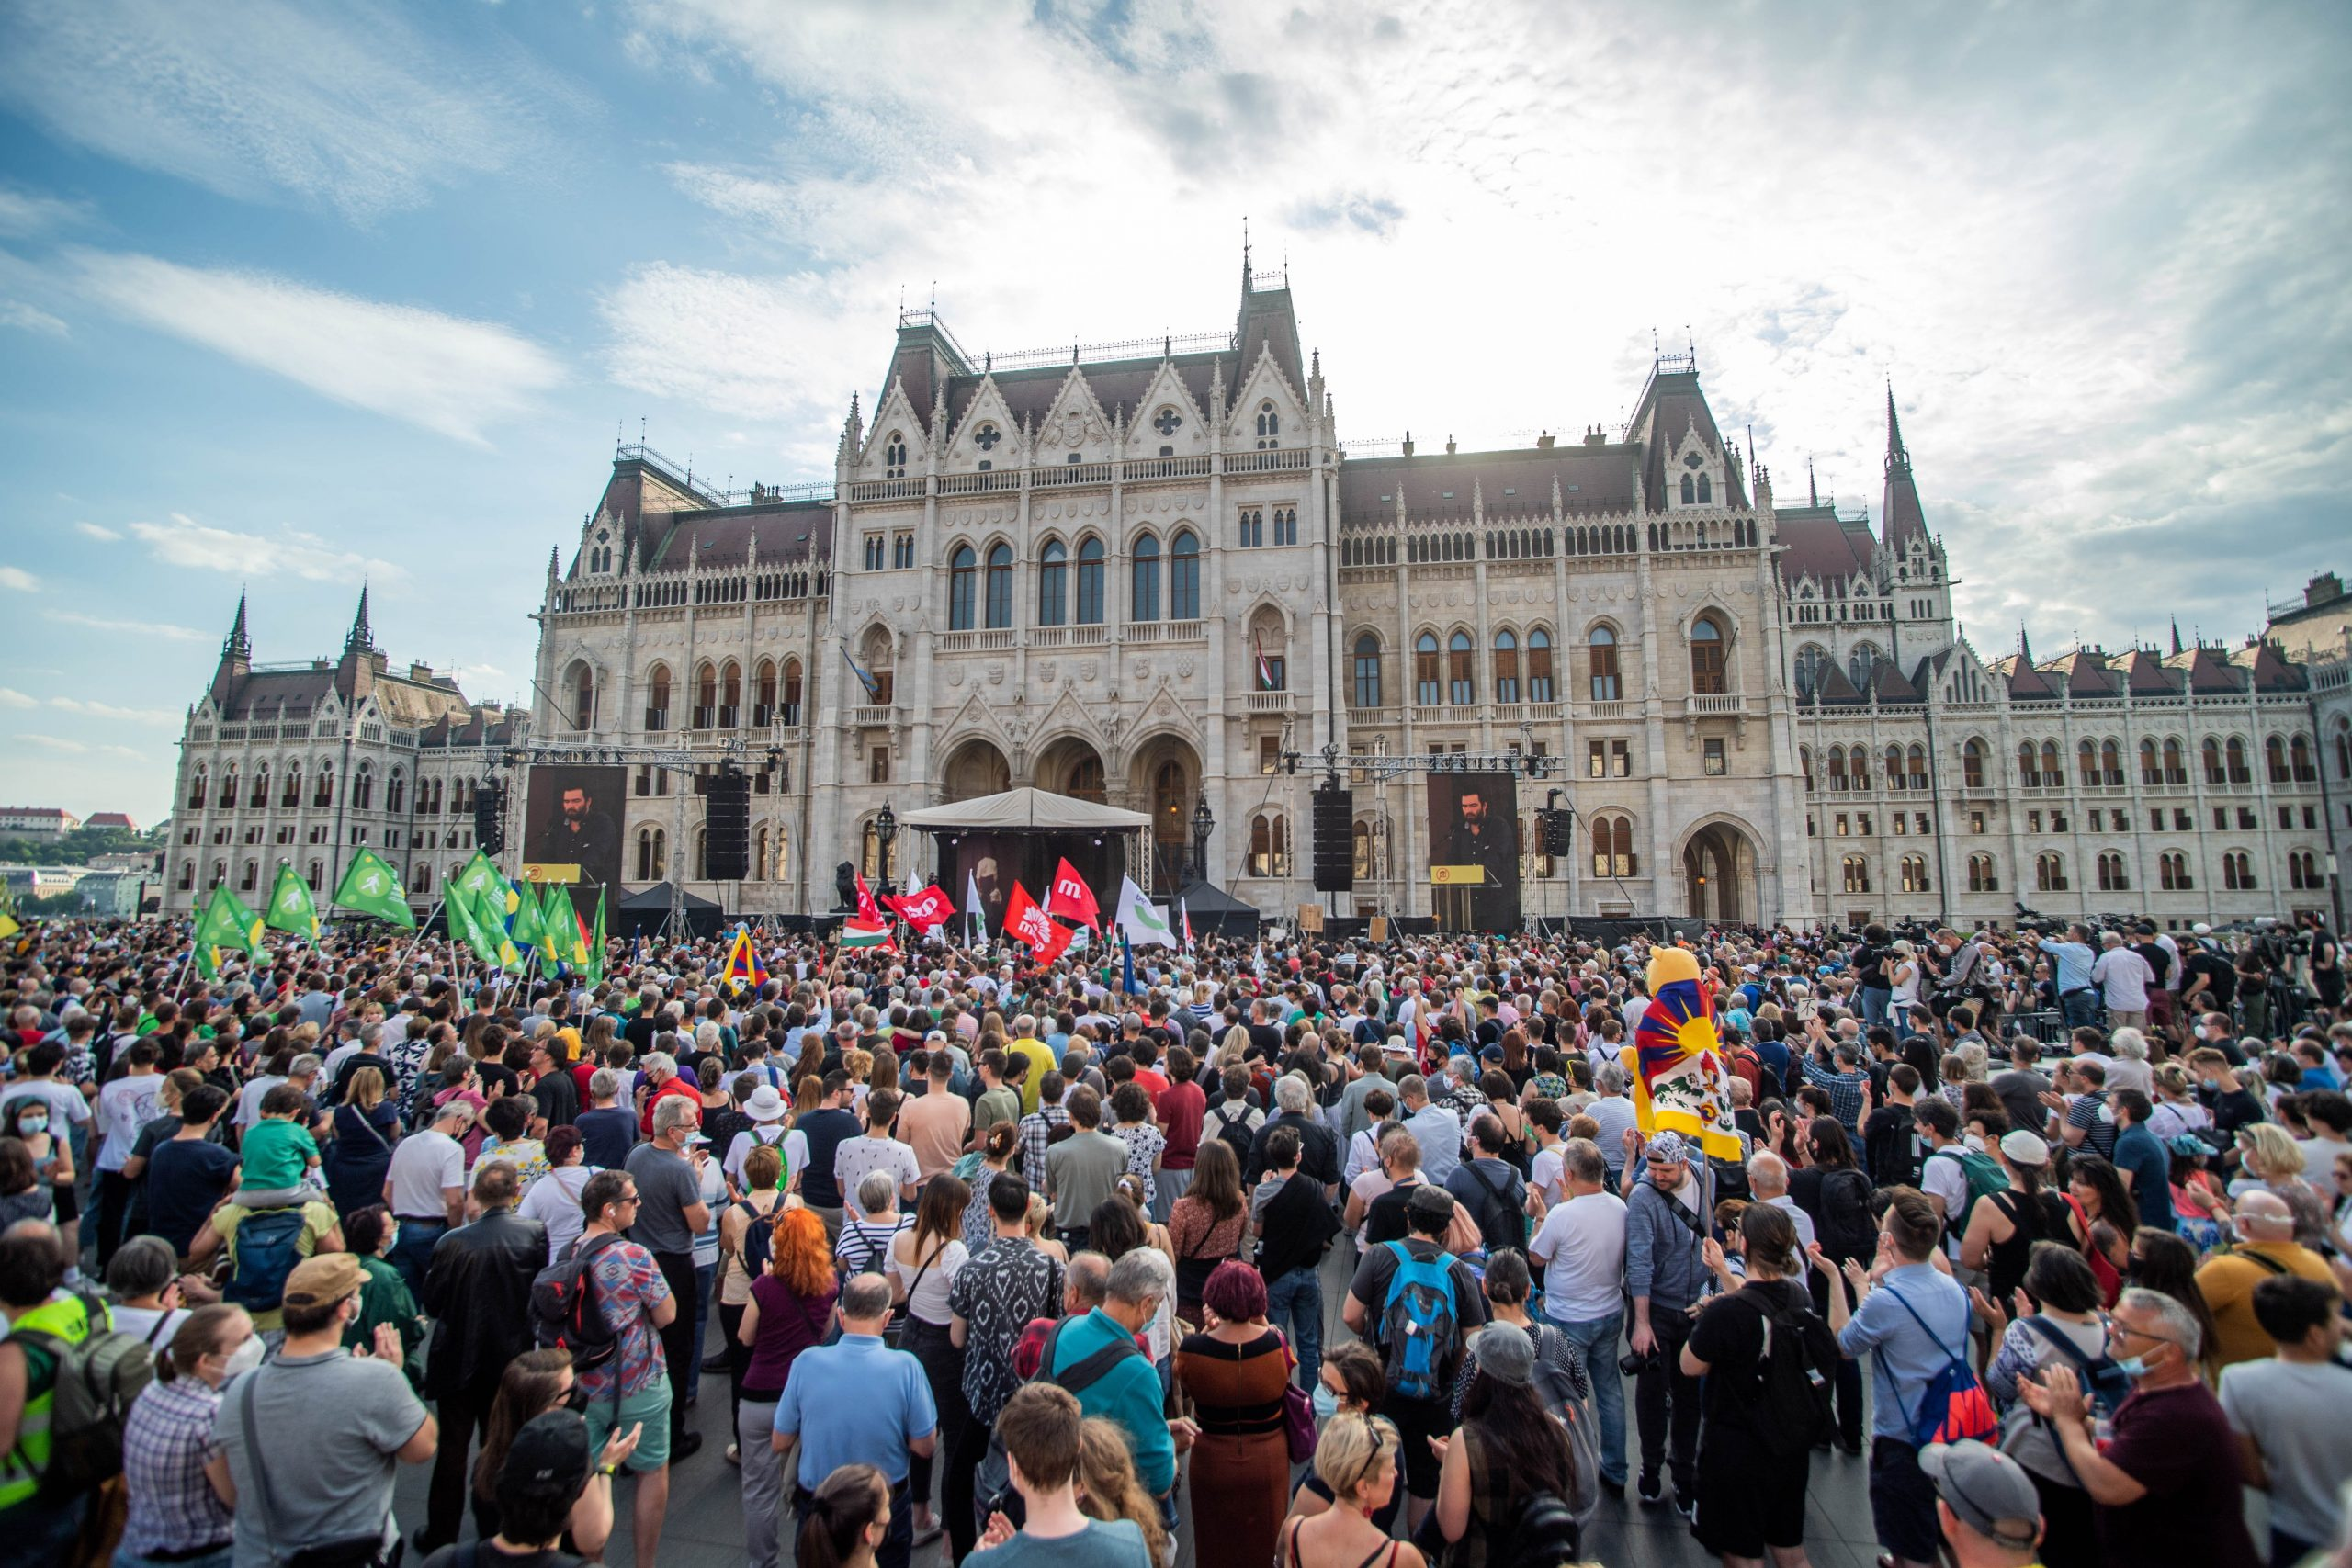 Gov't Passes Bill on Fudan Hungary While Rejecting Relevance of Debate